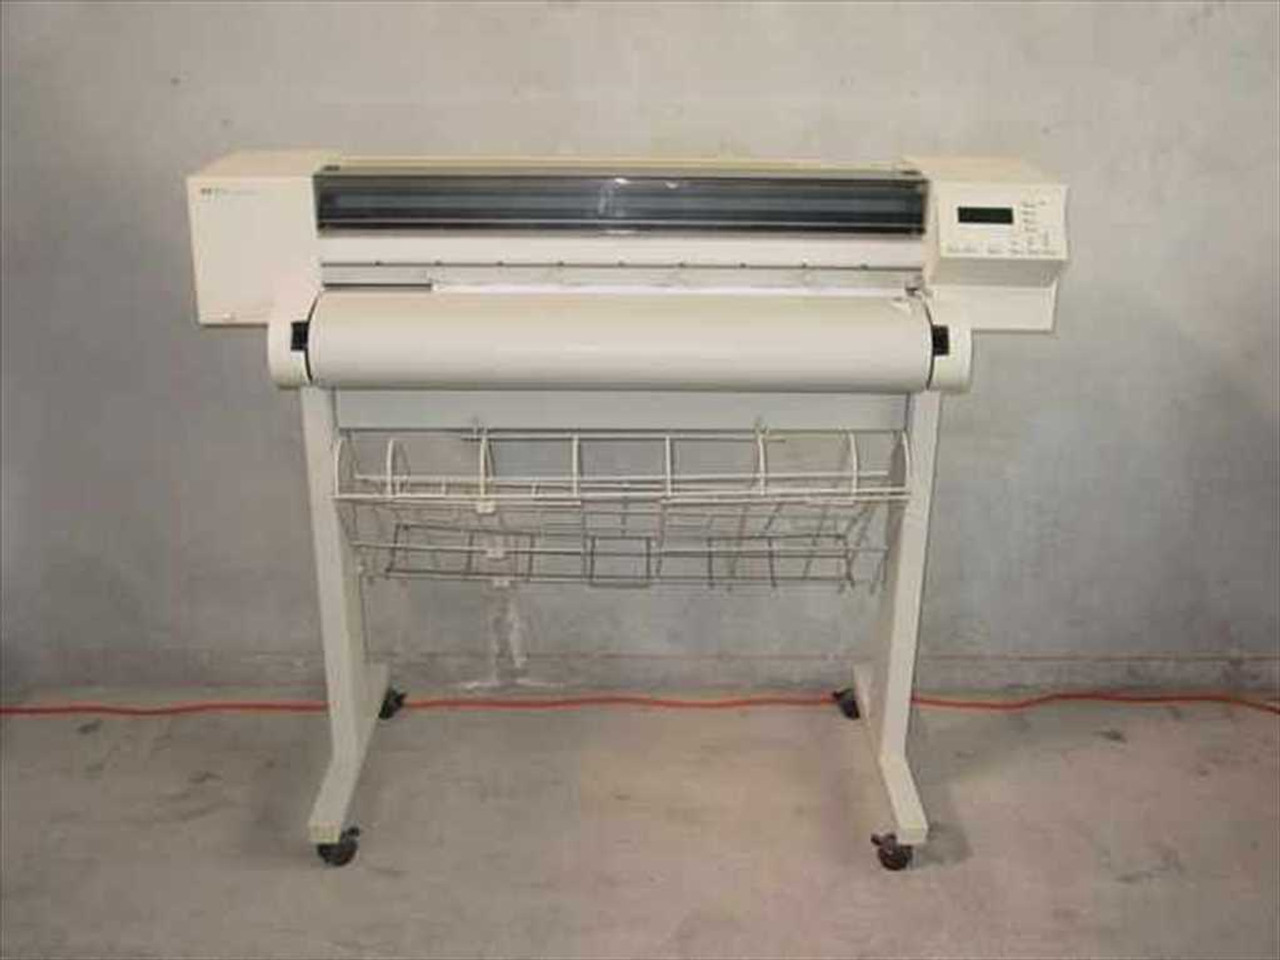 hp designjet 600 plotter service manual